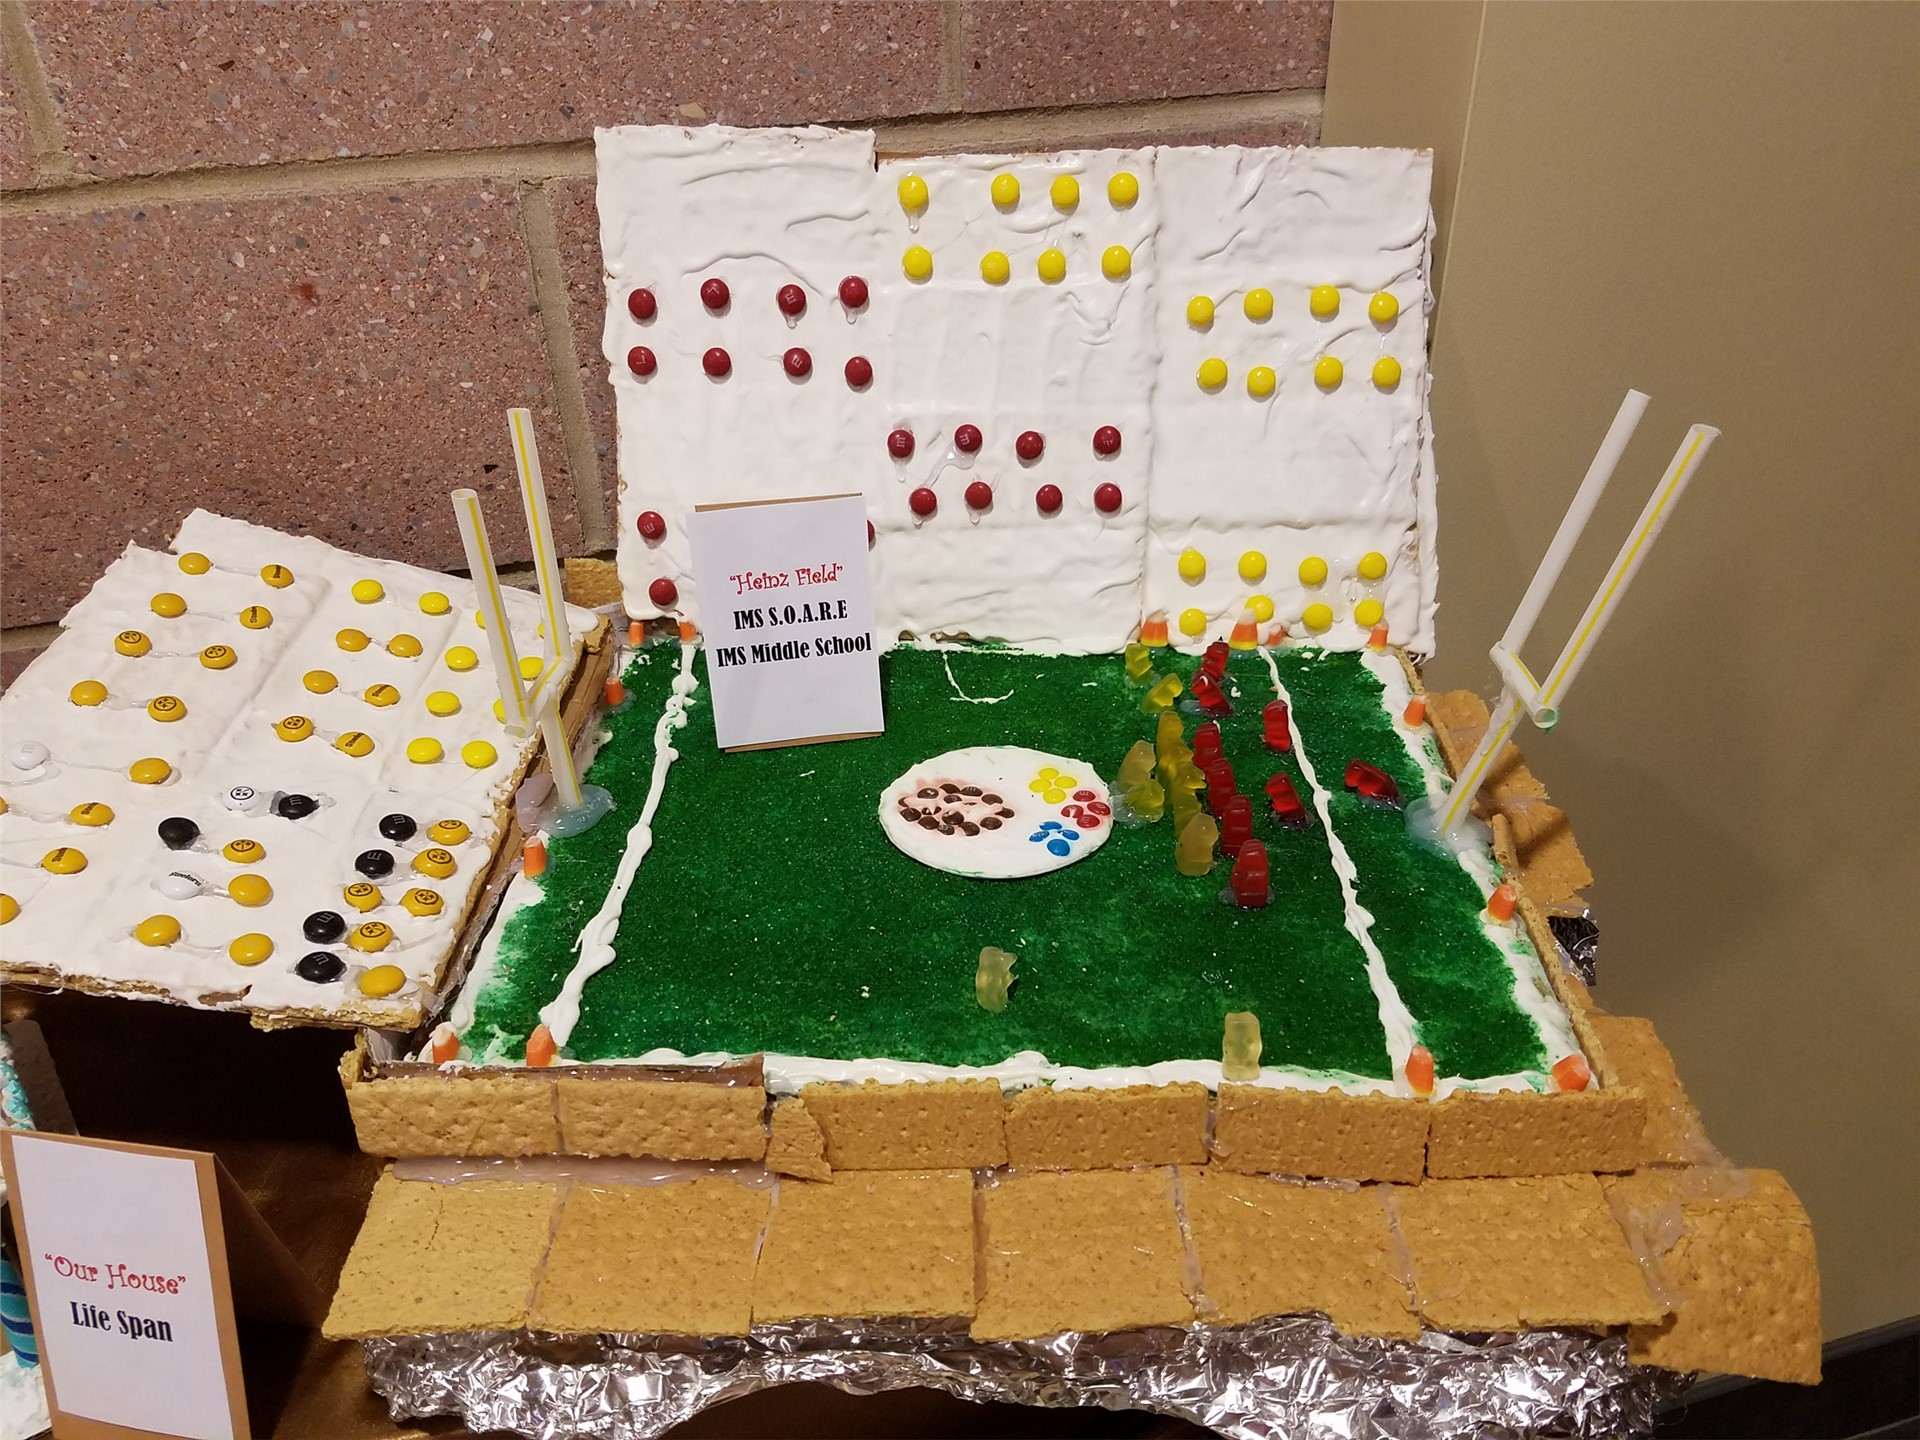 gingerbread houses displayed at the Bethel Park Community Center